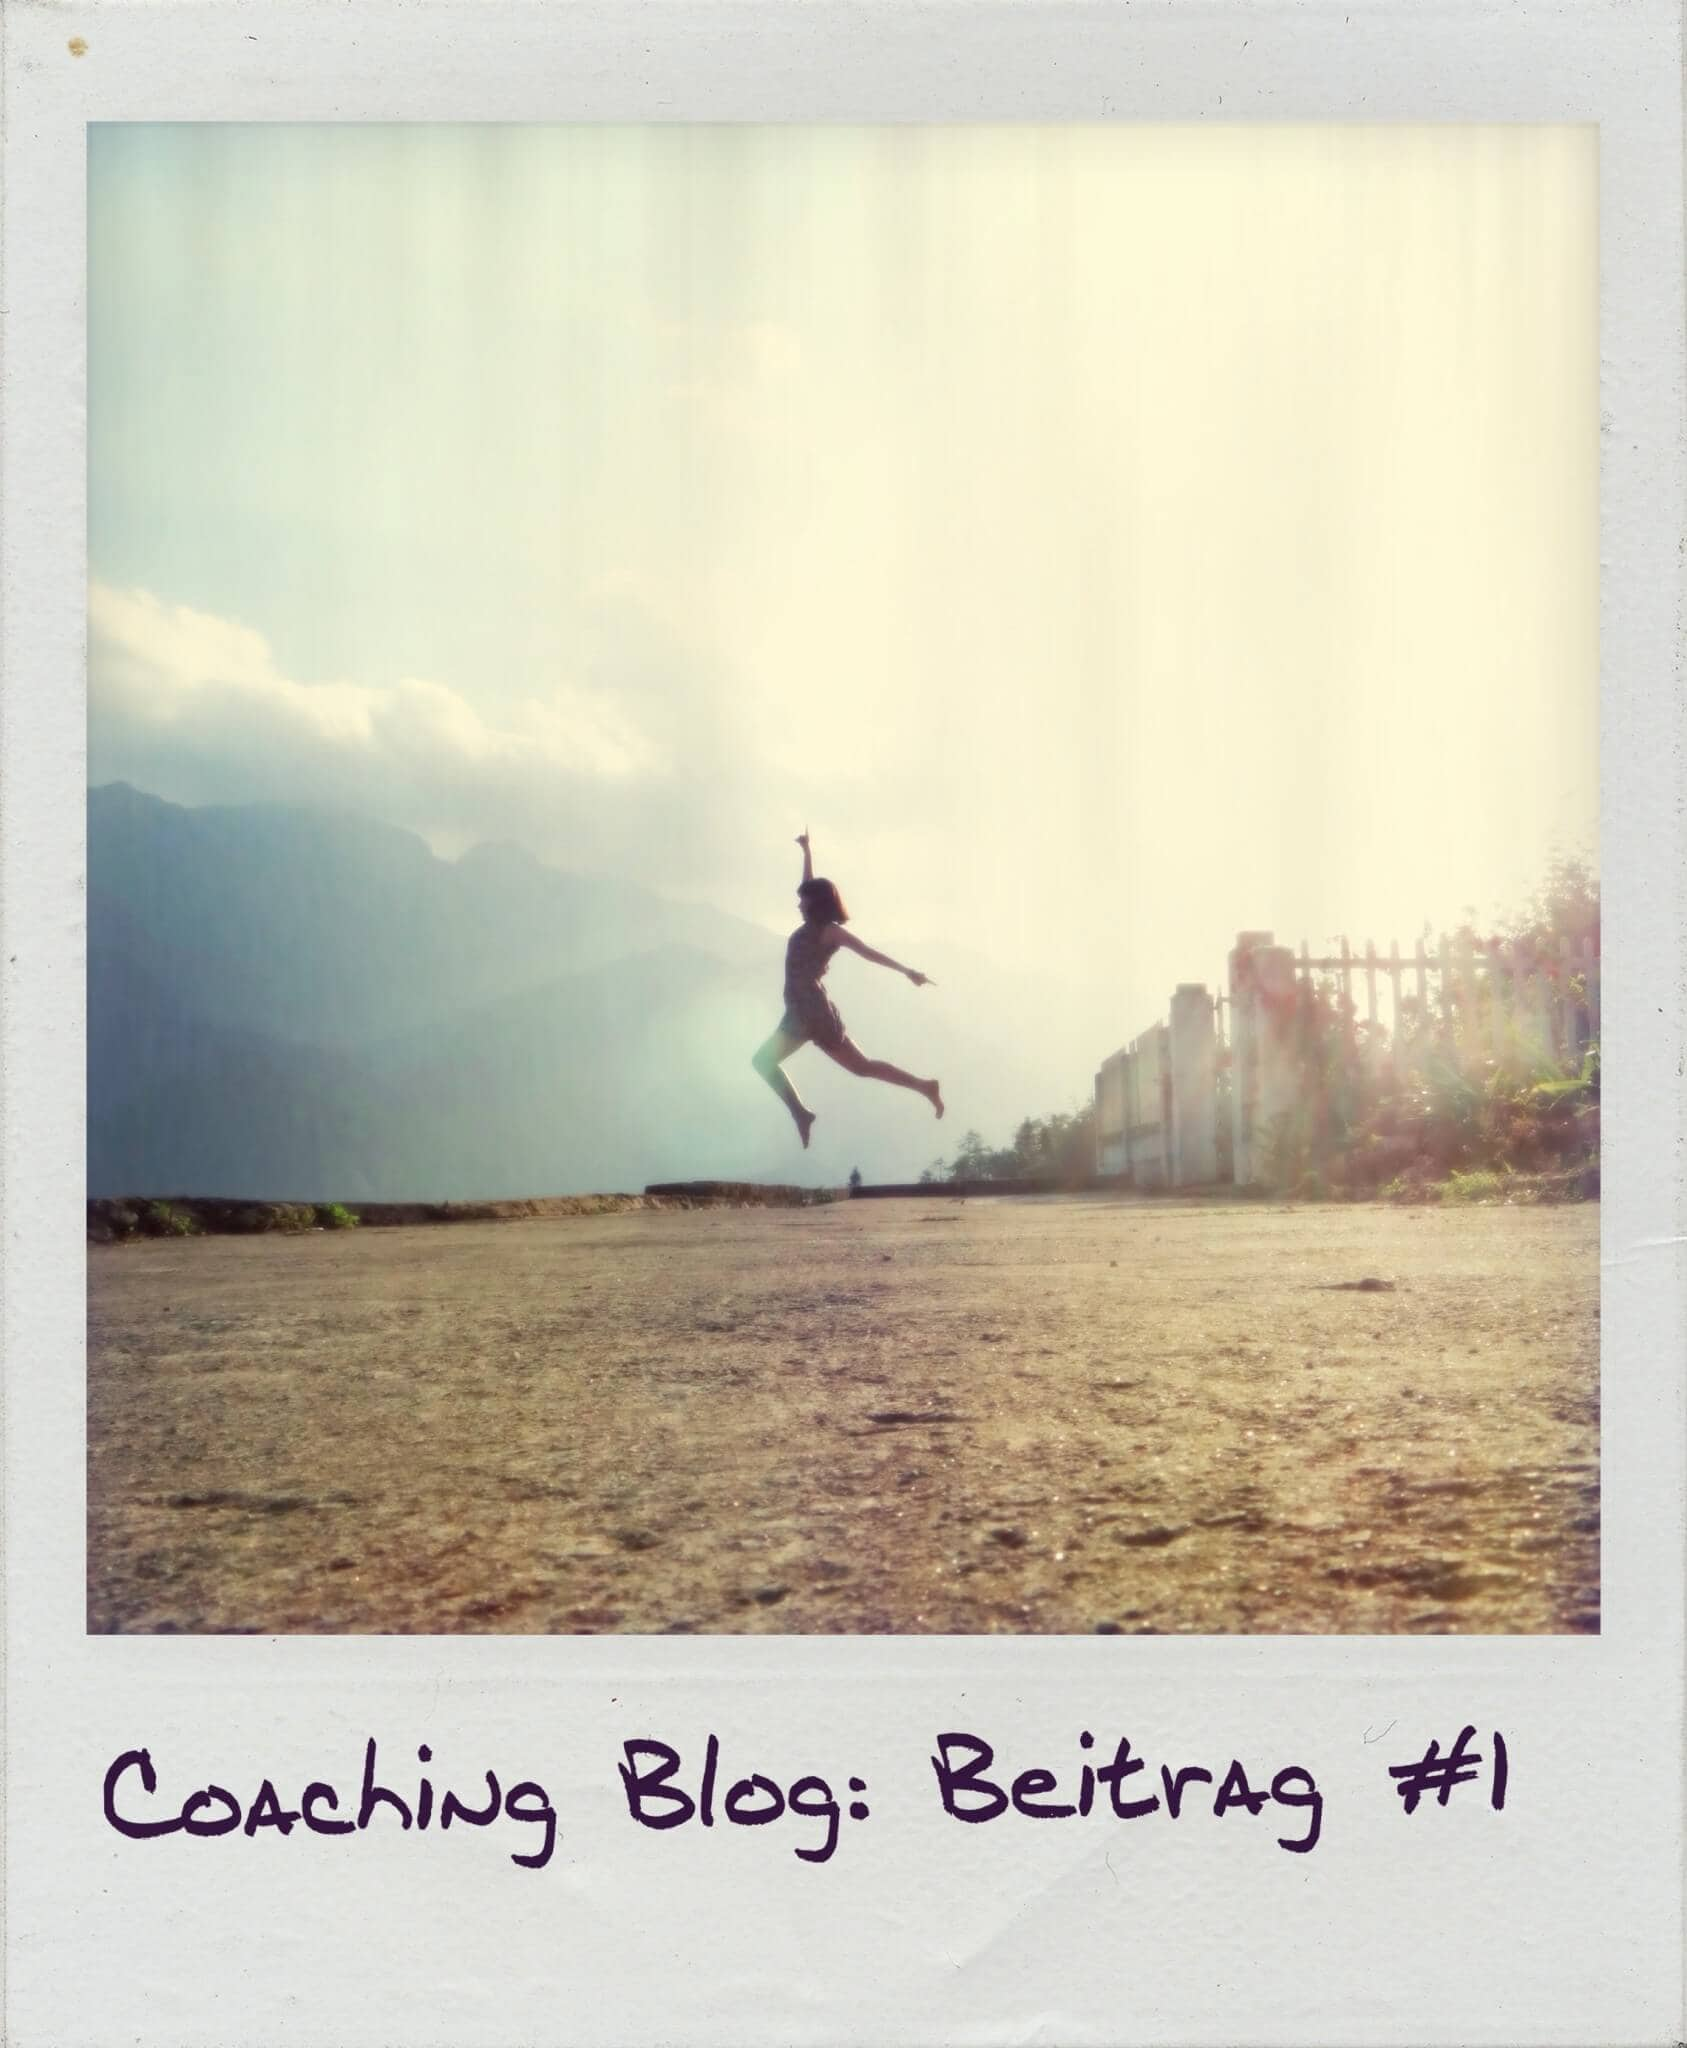 Life Coaching Blog, Laura Seiler Berlin